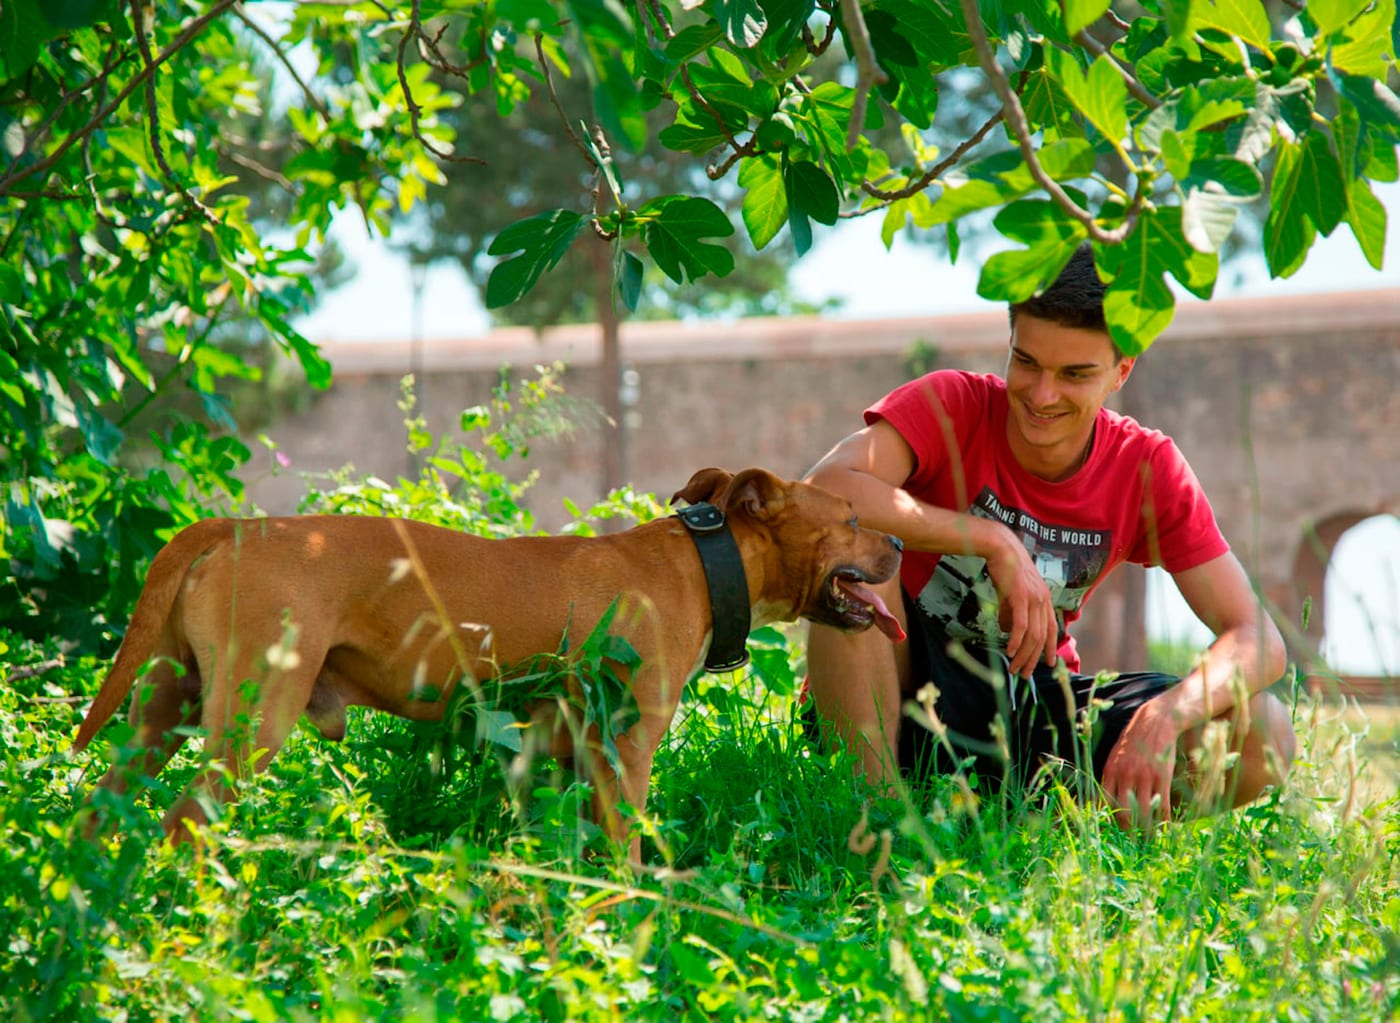 A young man crouching next to a dog in the grass under a tree.